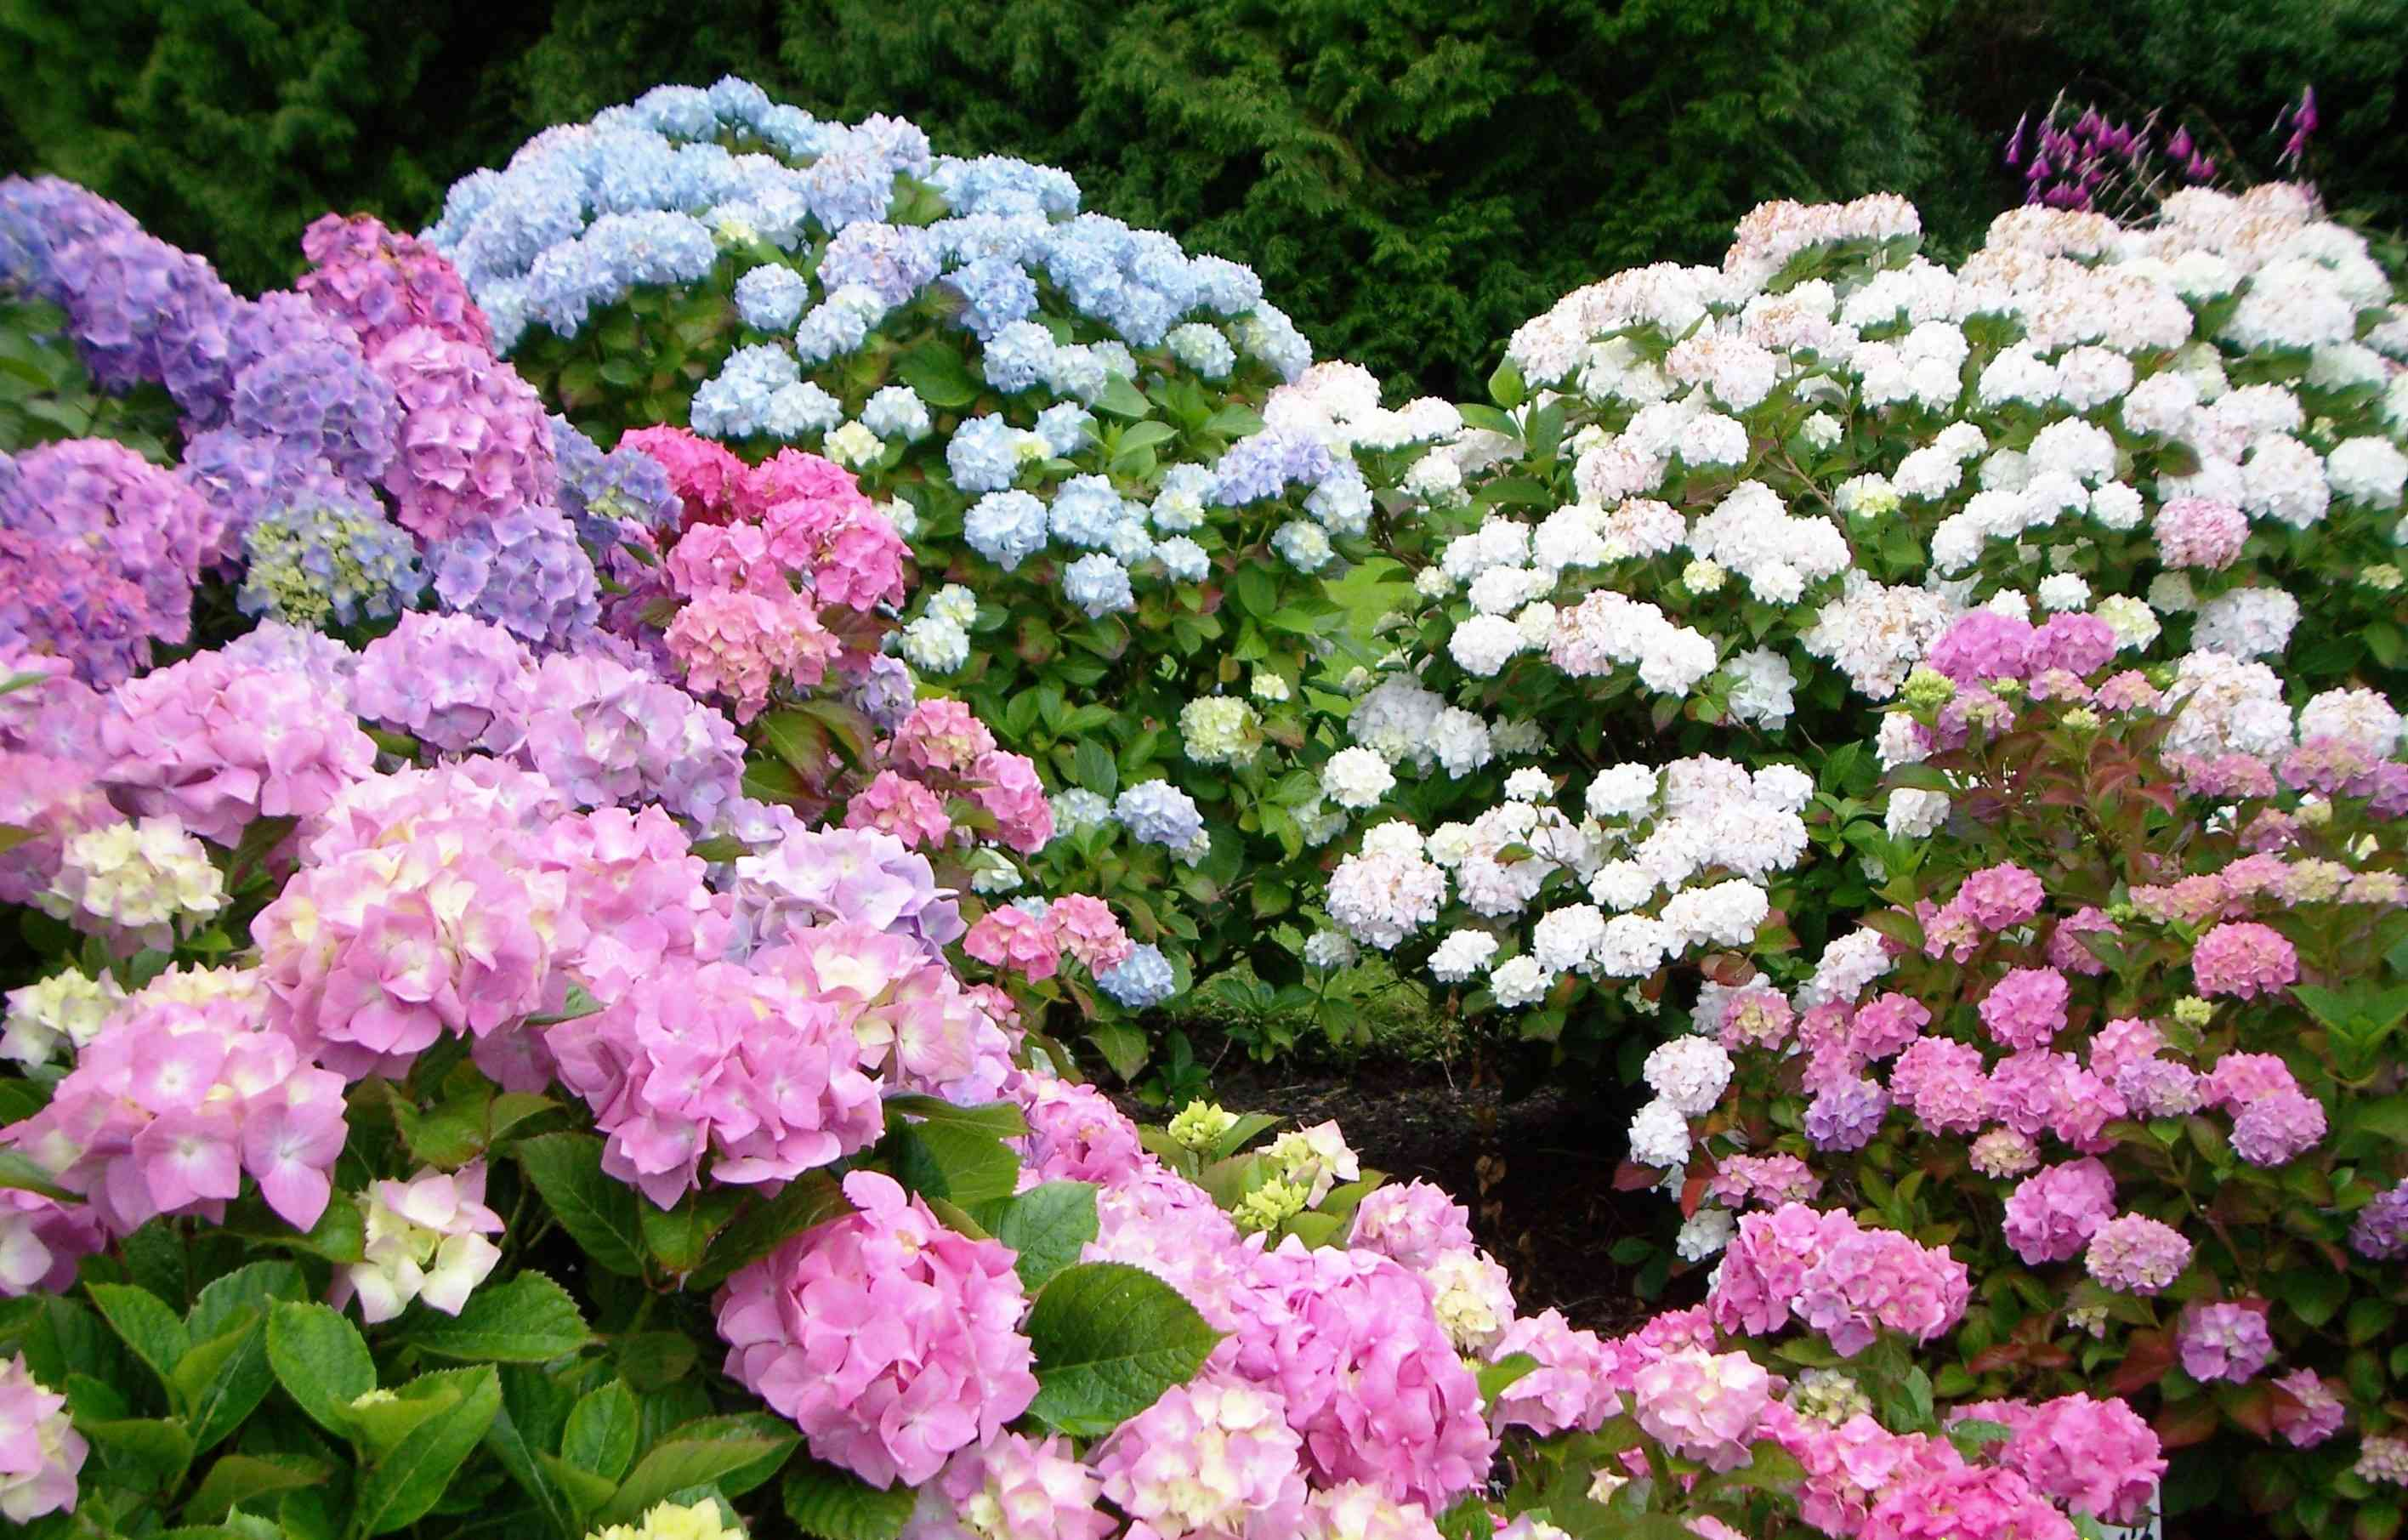 Varieties of Endless Summer Hydrangea shrubs in pink,blue, white, and purple.